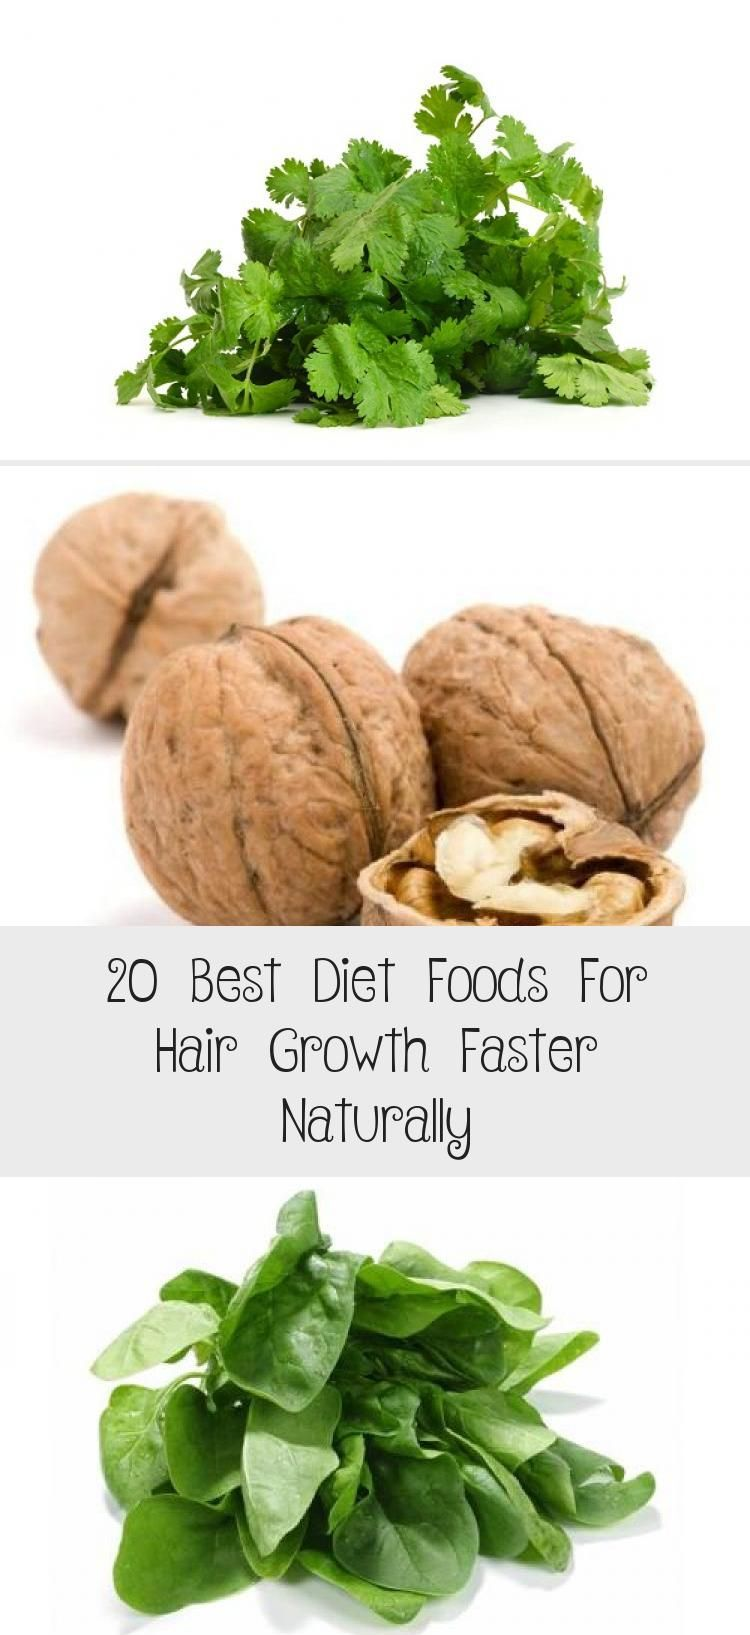 20 Best Diet Foods For Hair Growth Faster Naturally in